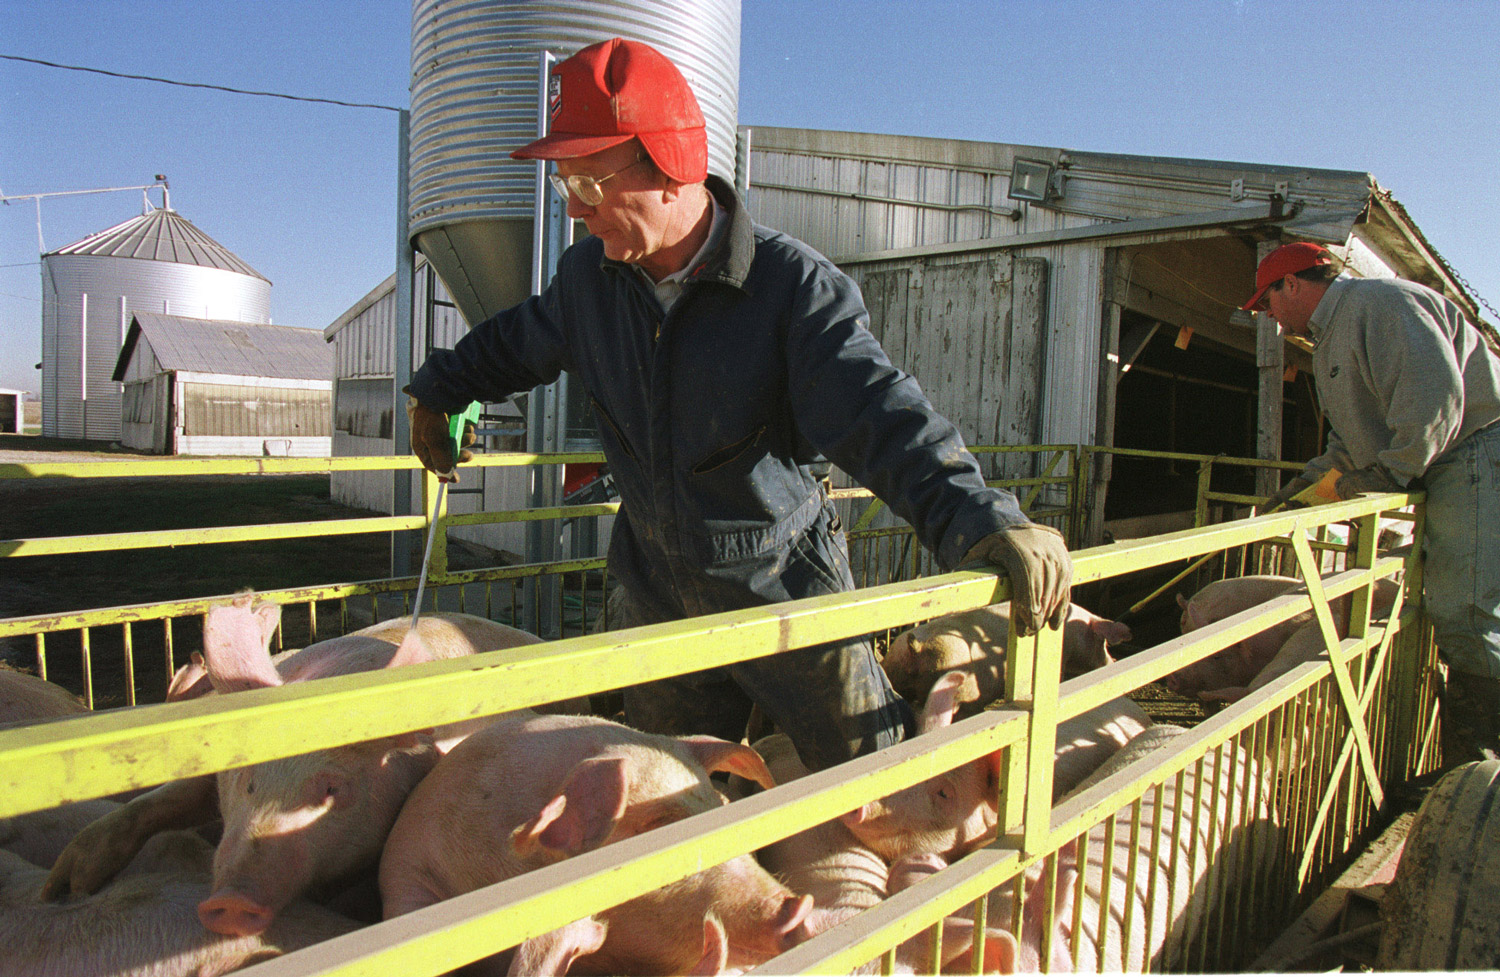 A pig farmer in Indiana. (© copyright Karen Ducey)